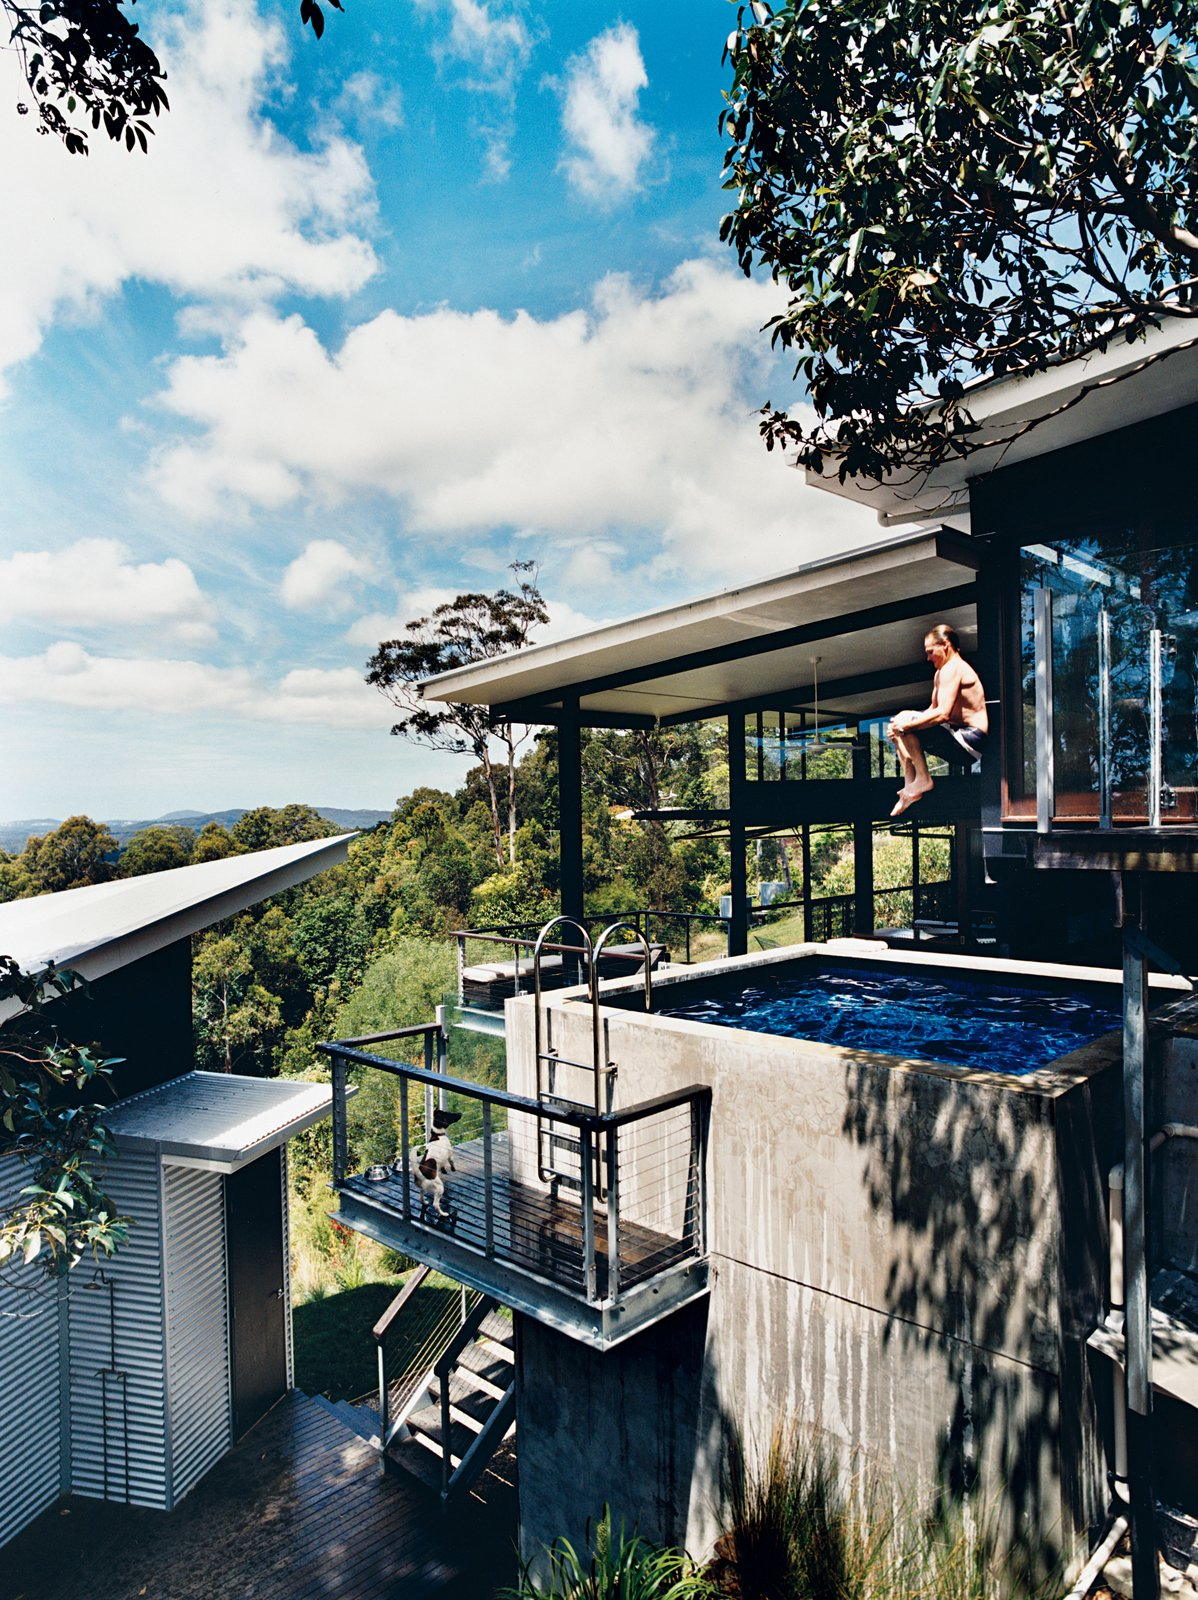 #outdoor #exterior #outside #pool #plungepool #australia #jumpin #hillside #watersource #firefighting  Photo courtesy of Richard Powers   Daring Hillside Homes by Diana Budds from Pools